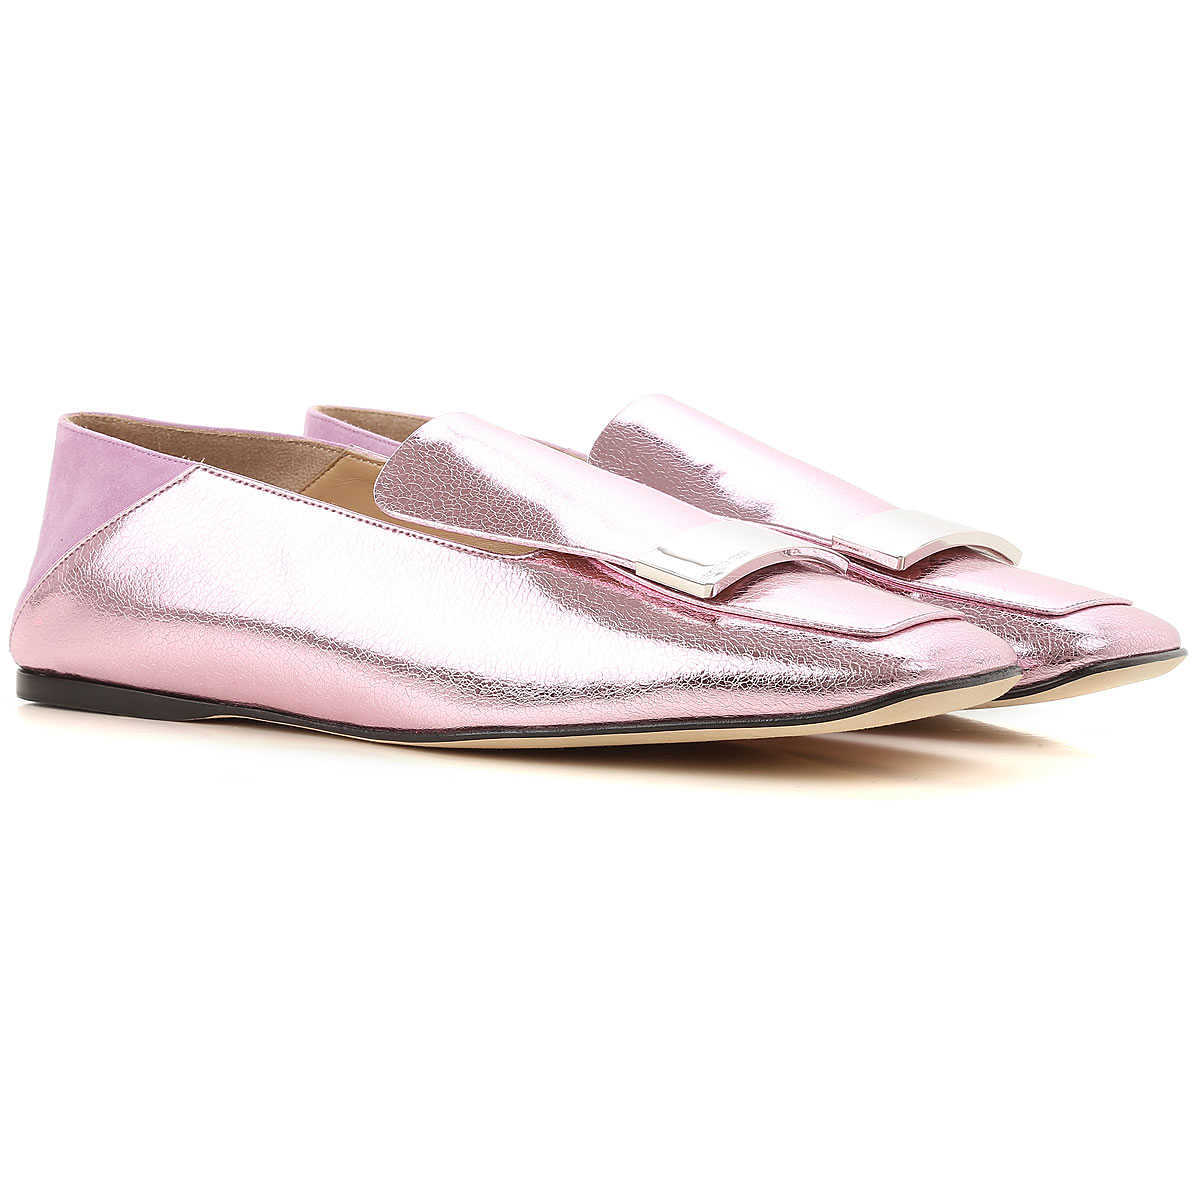 Sergio Rossi Loafers for Women On Sale in Outlet Peony - GOOFASH